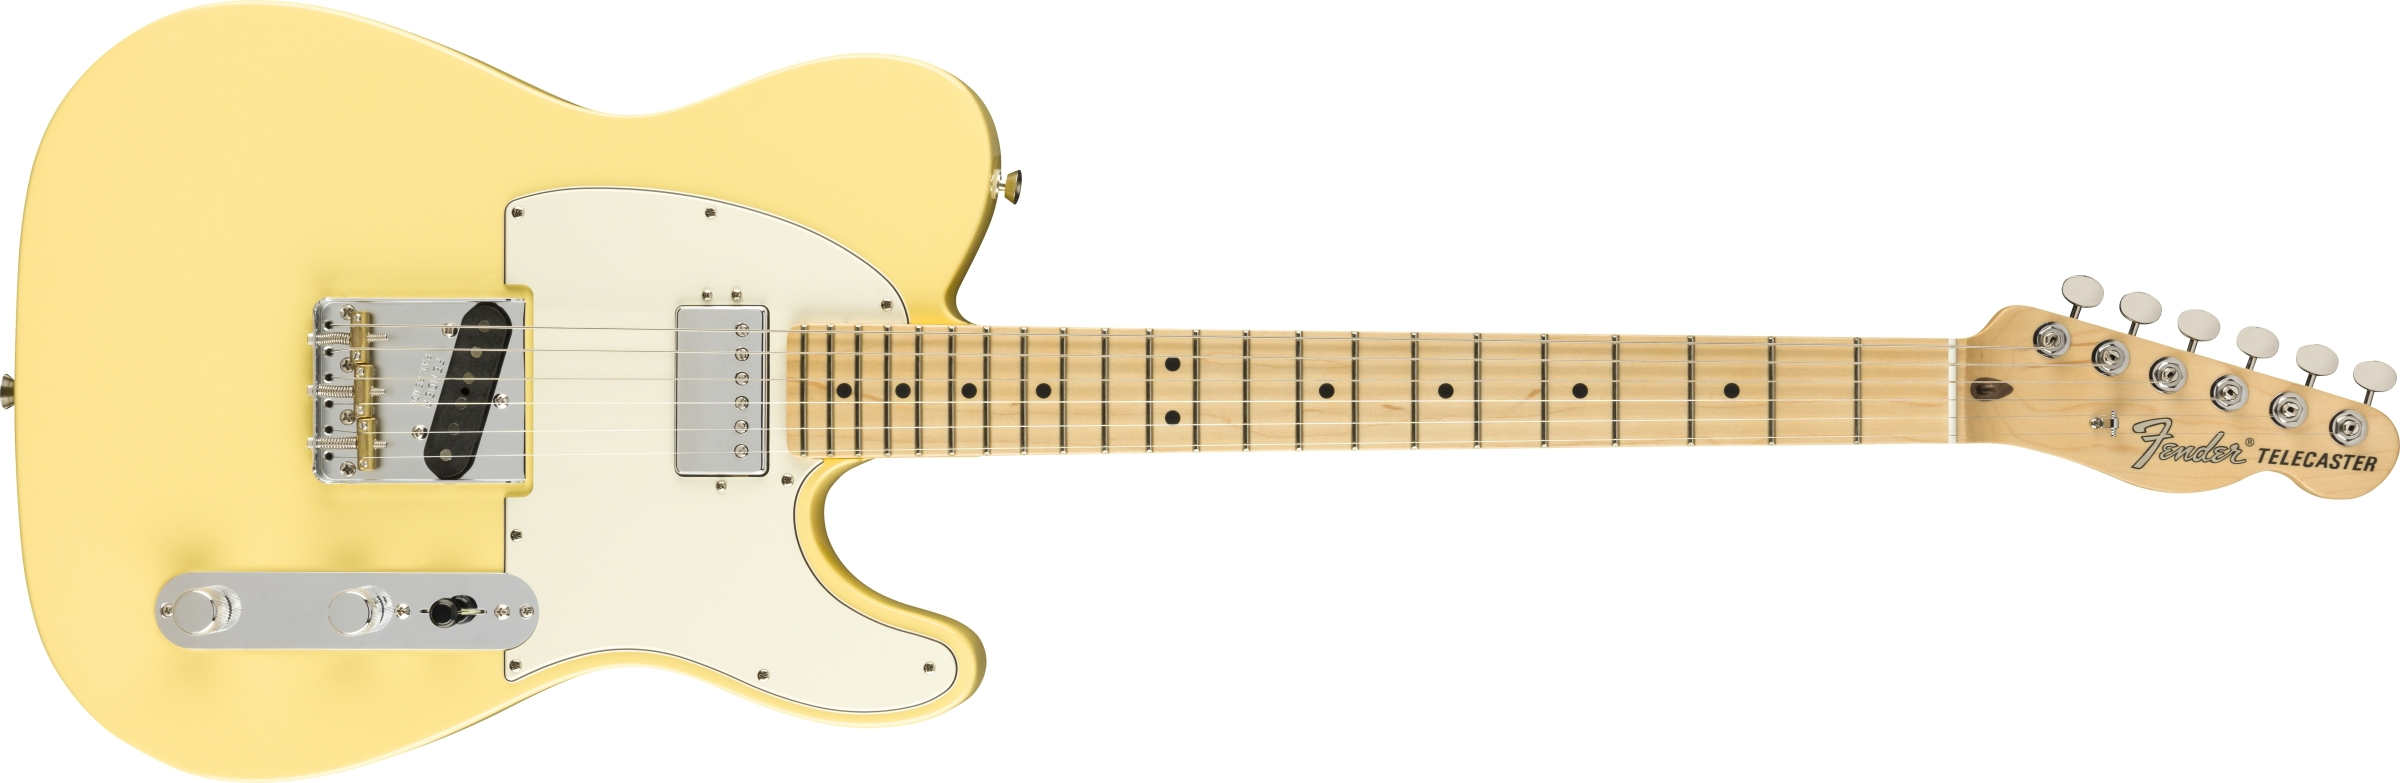 American Performer Telecaster Hum Electric Guitars Diagram For Wiring Two Humbuckers Tele Tap To Expand